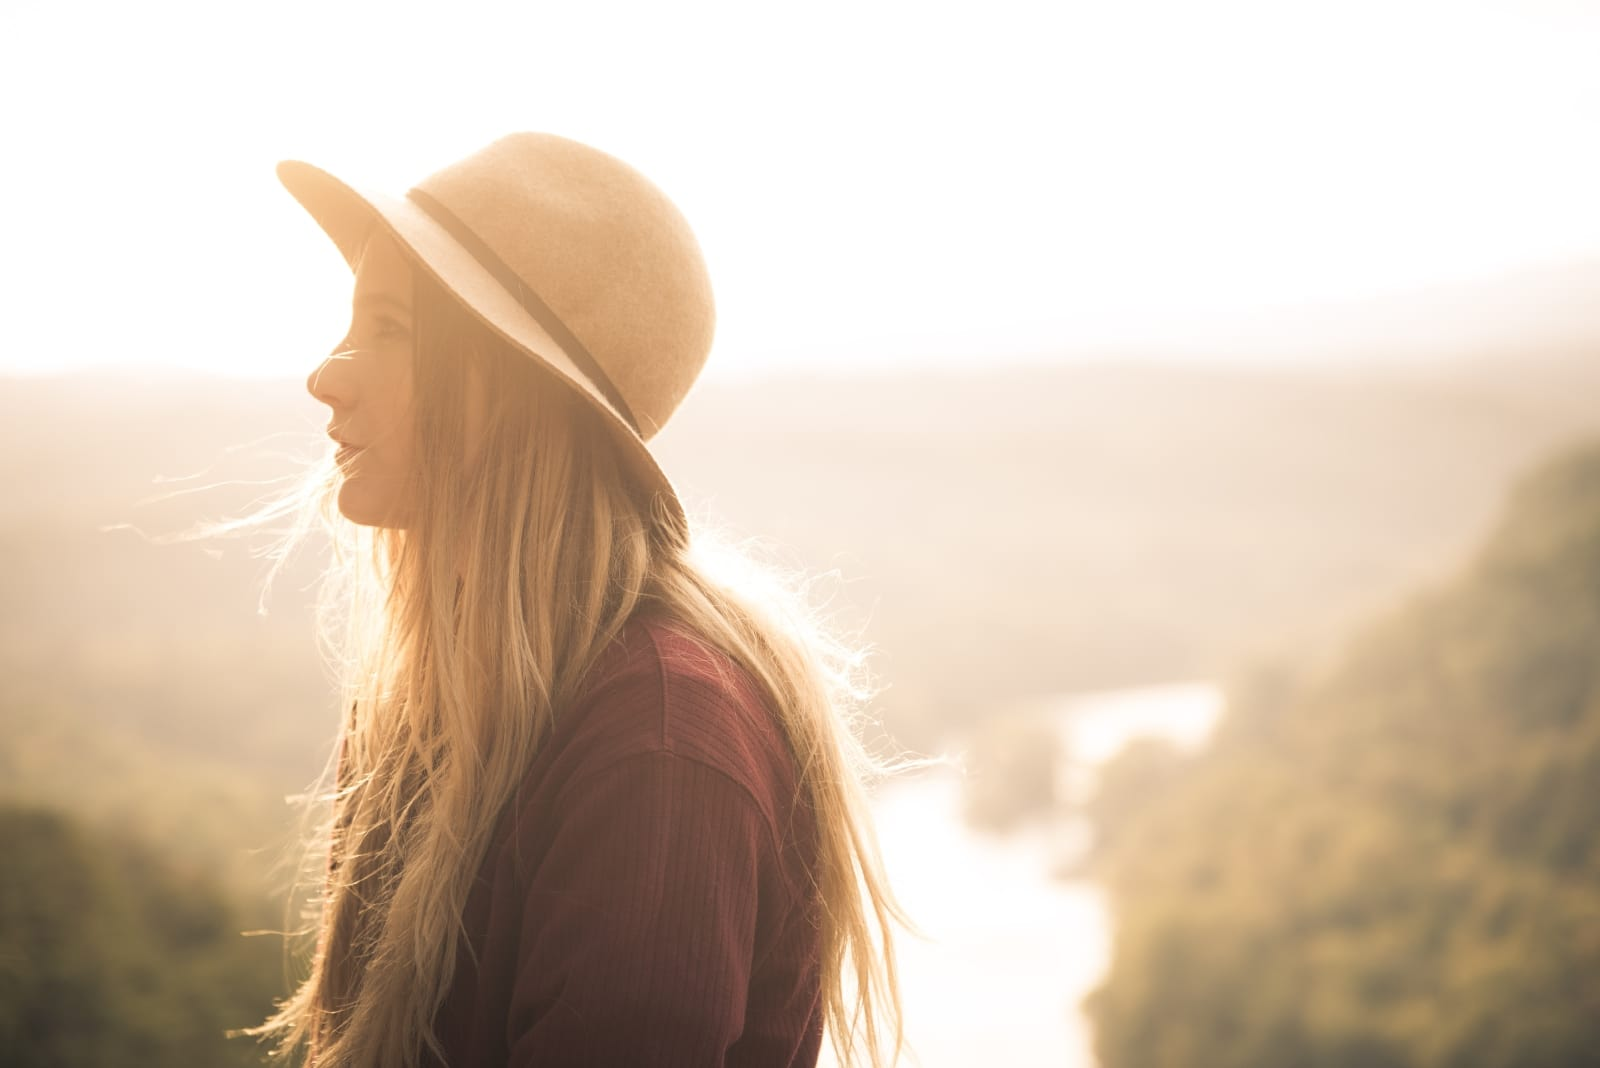 blonde woman with hat standing outdoor